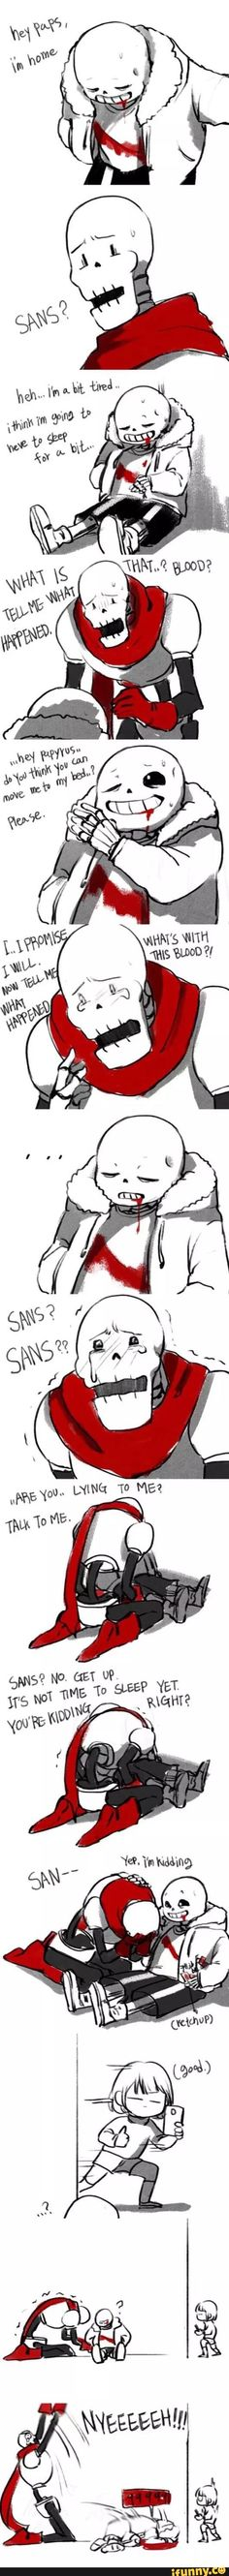 I almost fell for it there sans, if you were doing that to me, I would LITERALLY kill you like Paps did